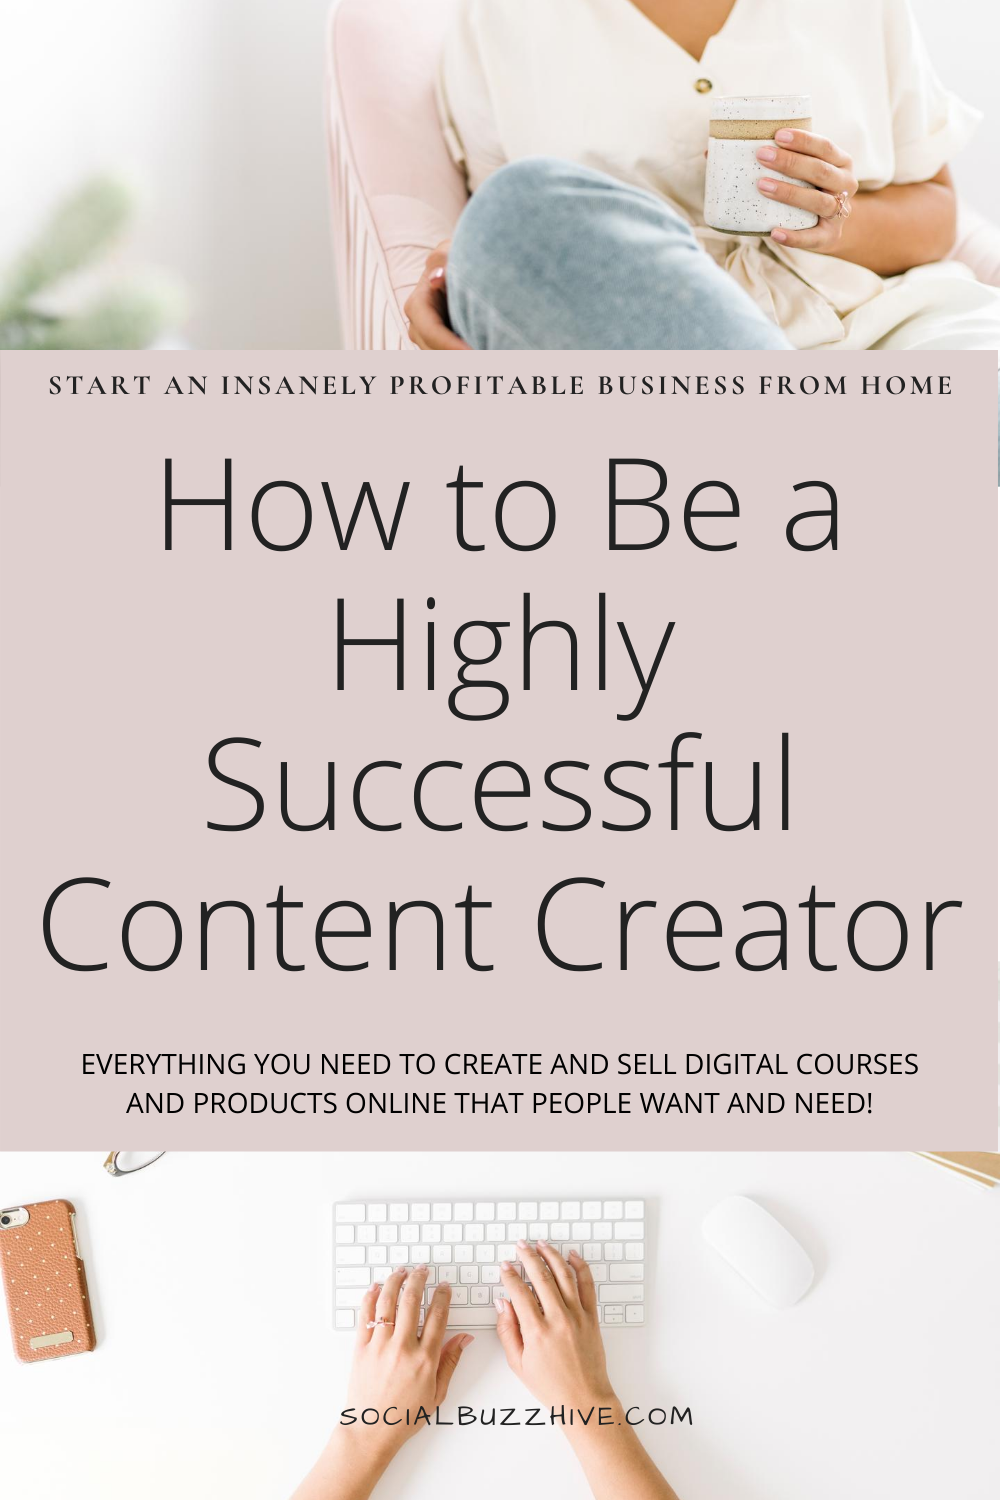 HOW TO BE A SUCCESSFUL CONTENT CREATOR